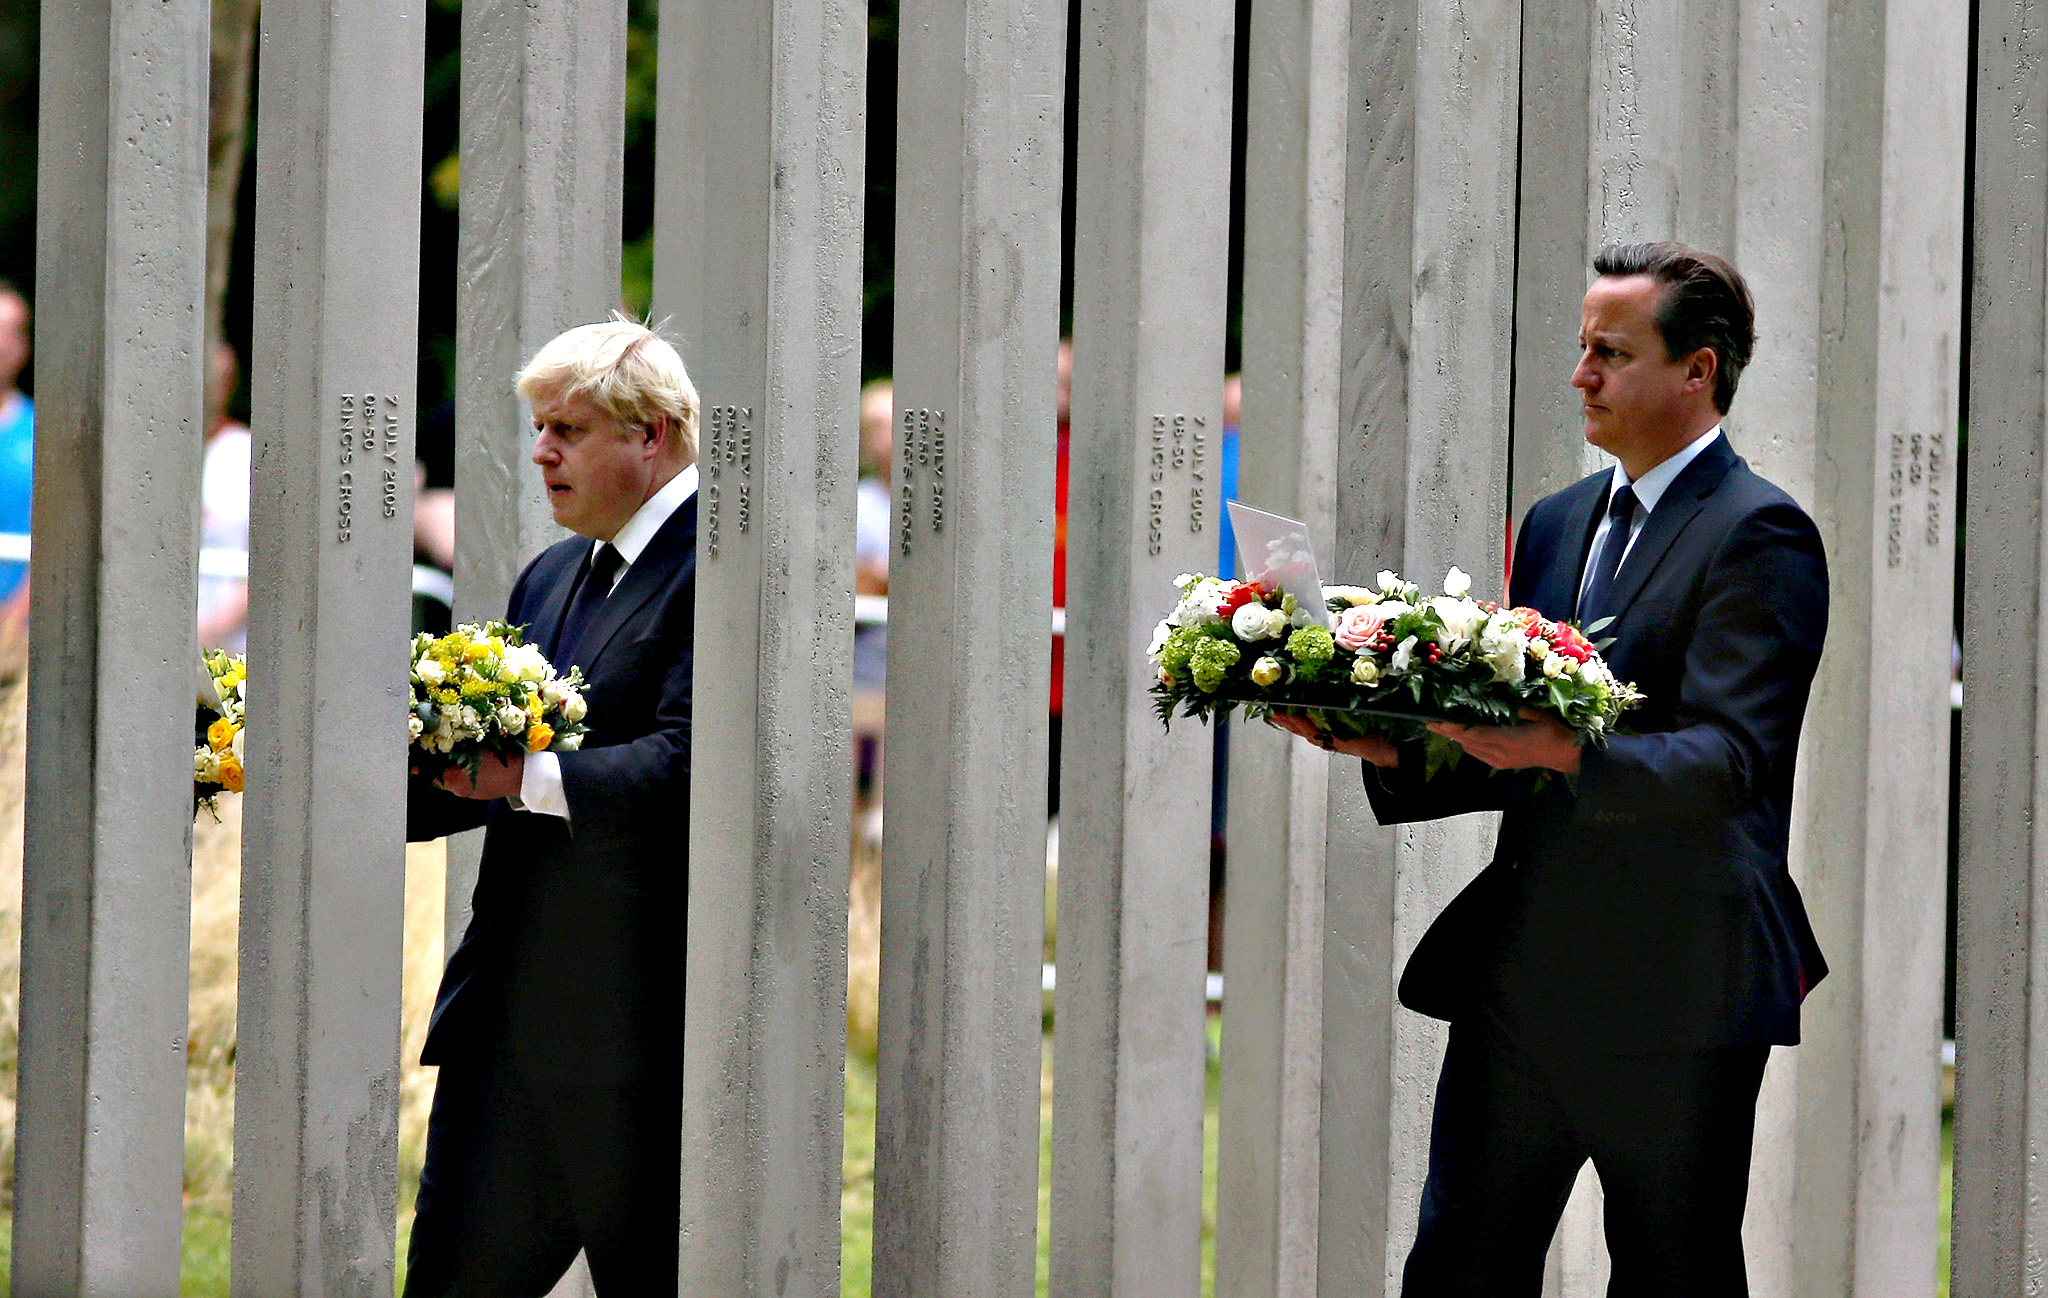 British Prime Minister David Cameron (R) and London Mayor Boris Johnson during a ceremony at the memorial to the victims of the July 7, 2005 London bombings, in Hyde Park on July 7, 2015 in London, England. Today is the tenth anniversary of the 7/7 bombings, when four suicide bombers struck transport system in central London on Thursday 7 July 2005, killing 52 people and injuring more than 770 in simultaneous attacks